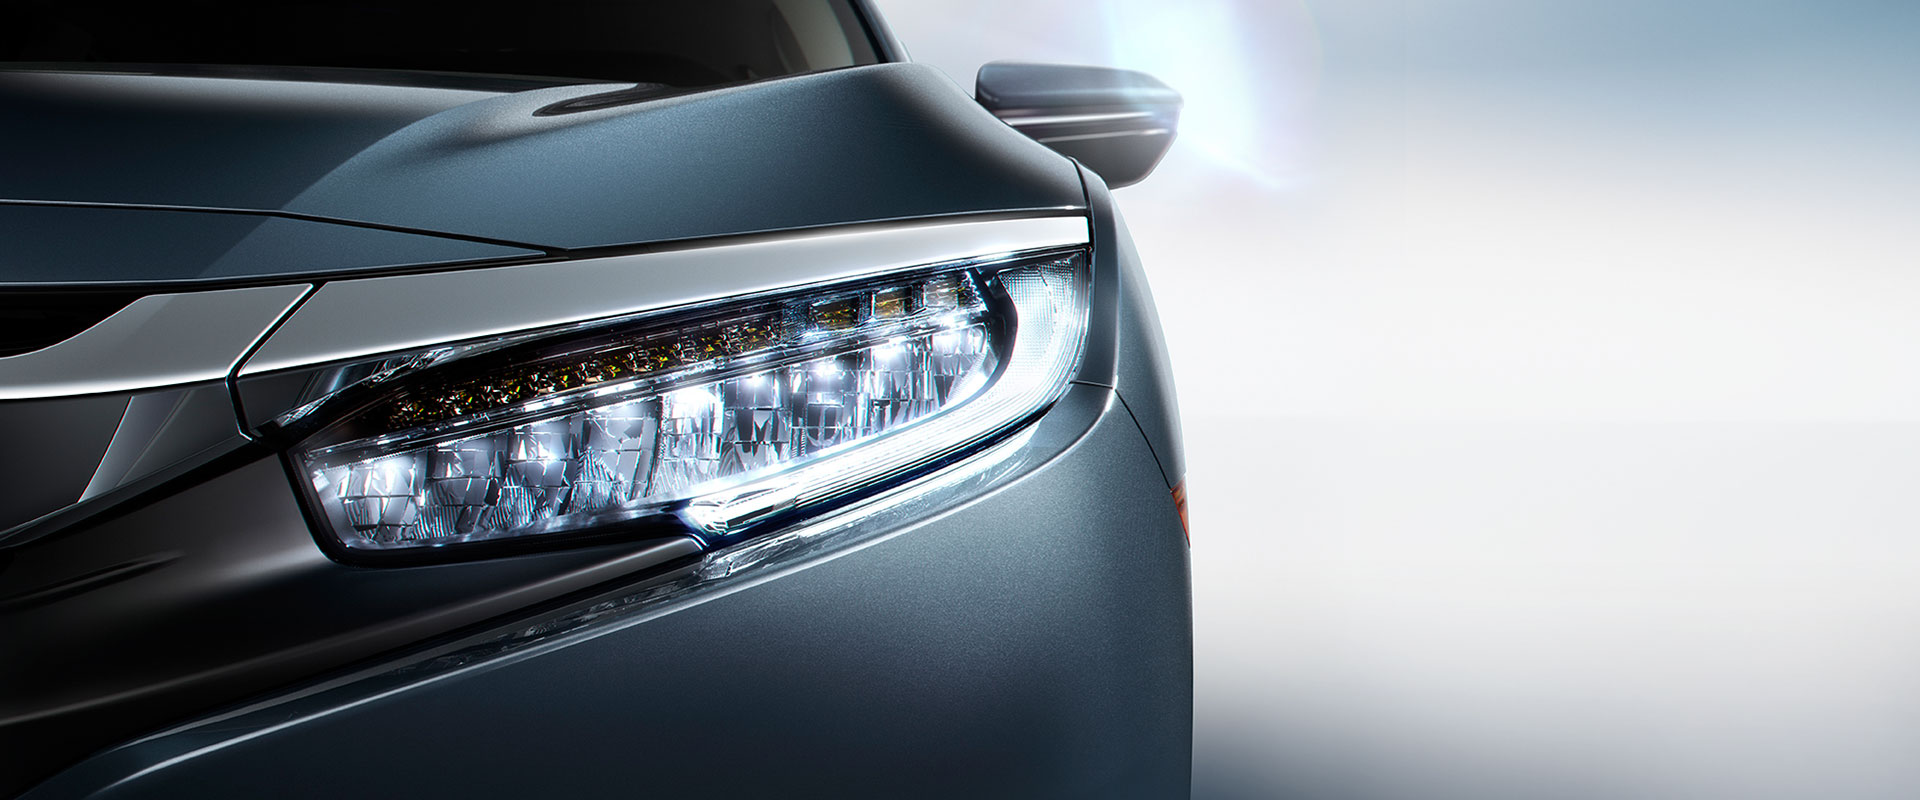 Honda Civic X headlights